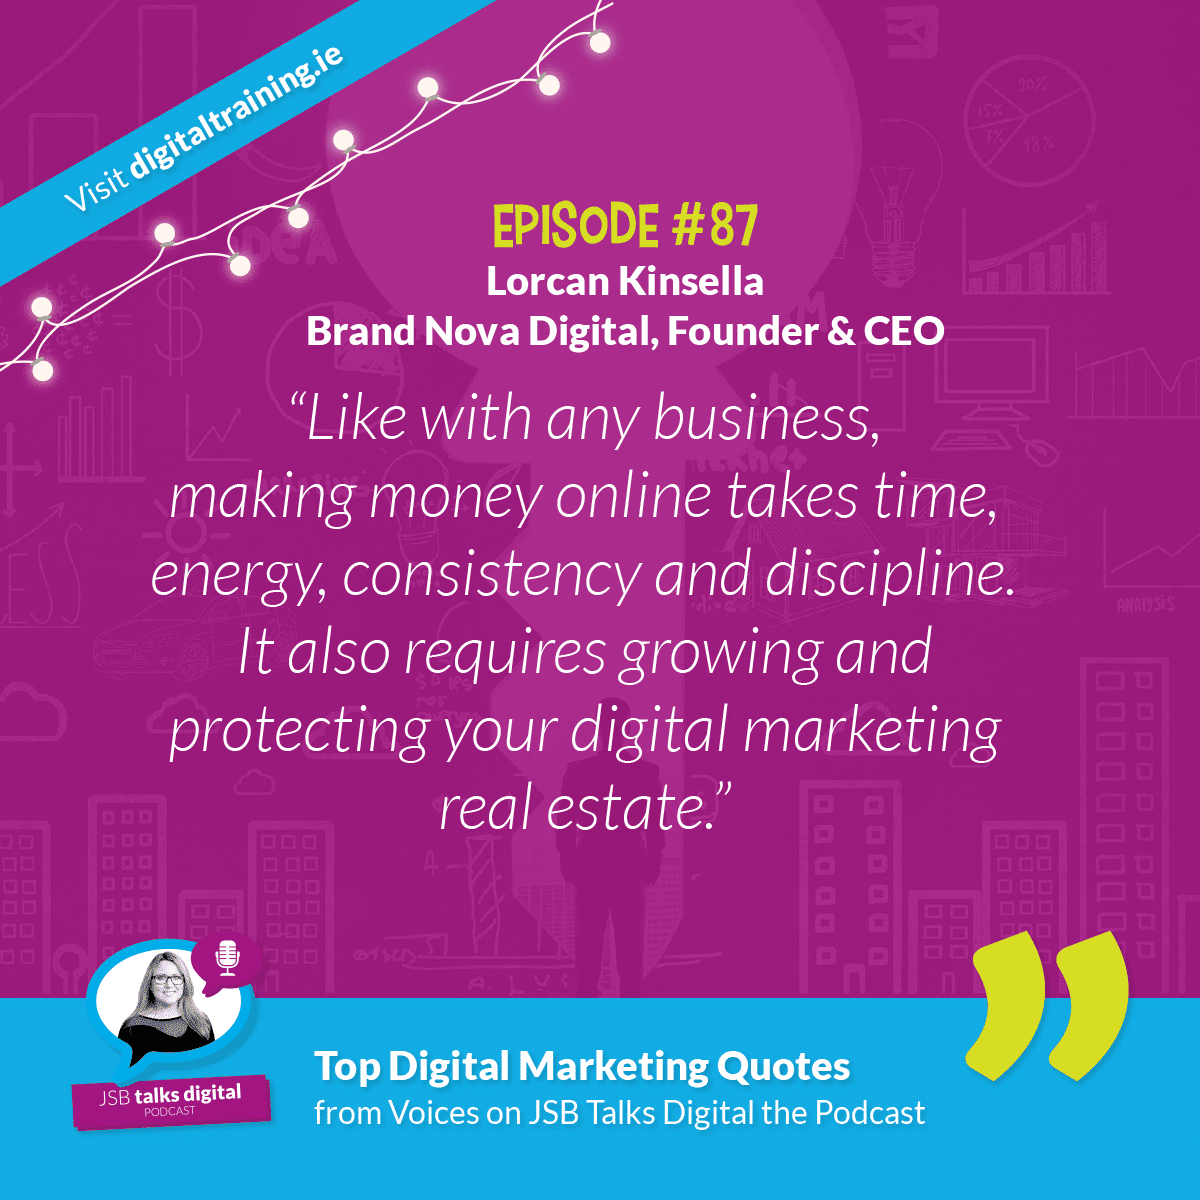 """""""Like with any business, making money online takes time, energy, consistency and discipline. It also requires growing and protecting your digital marketing real estate."""" - Lorcan Kinsella"""